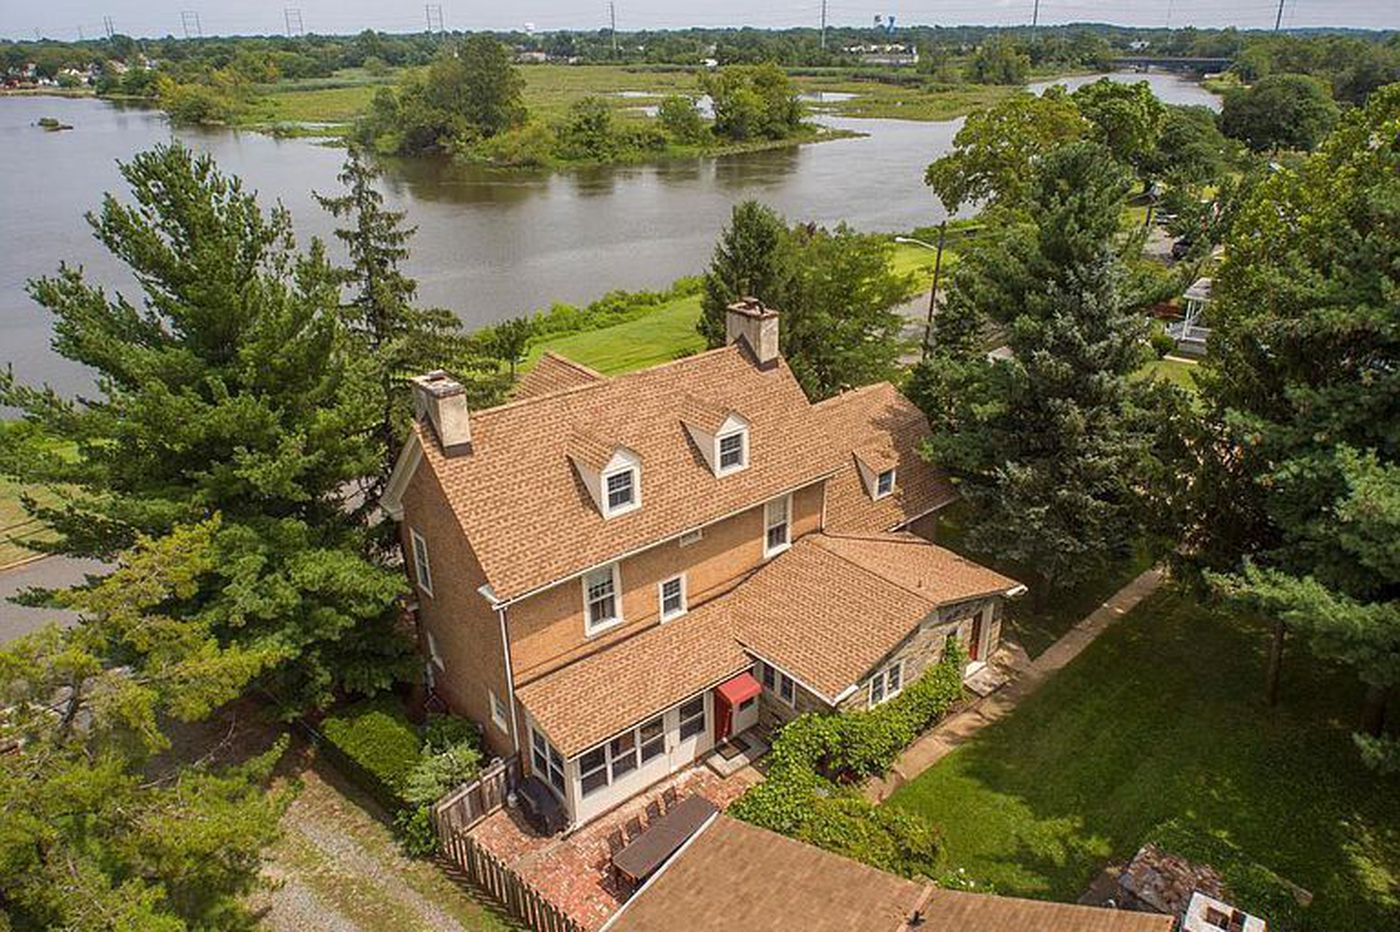 On the market: Historic riverfront home in South Jersey for $339,000